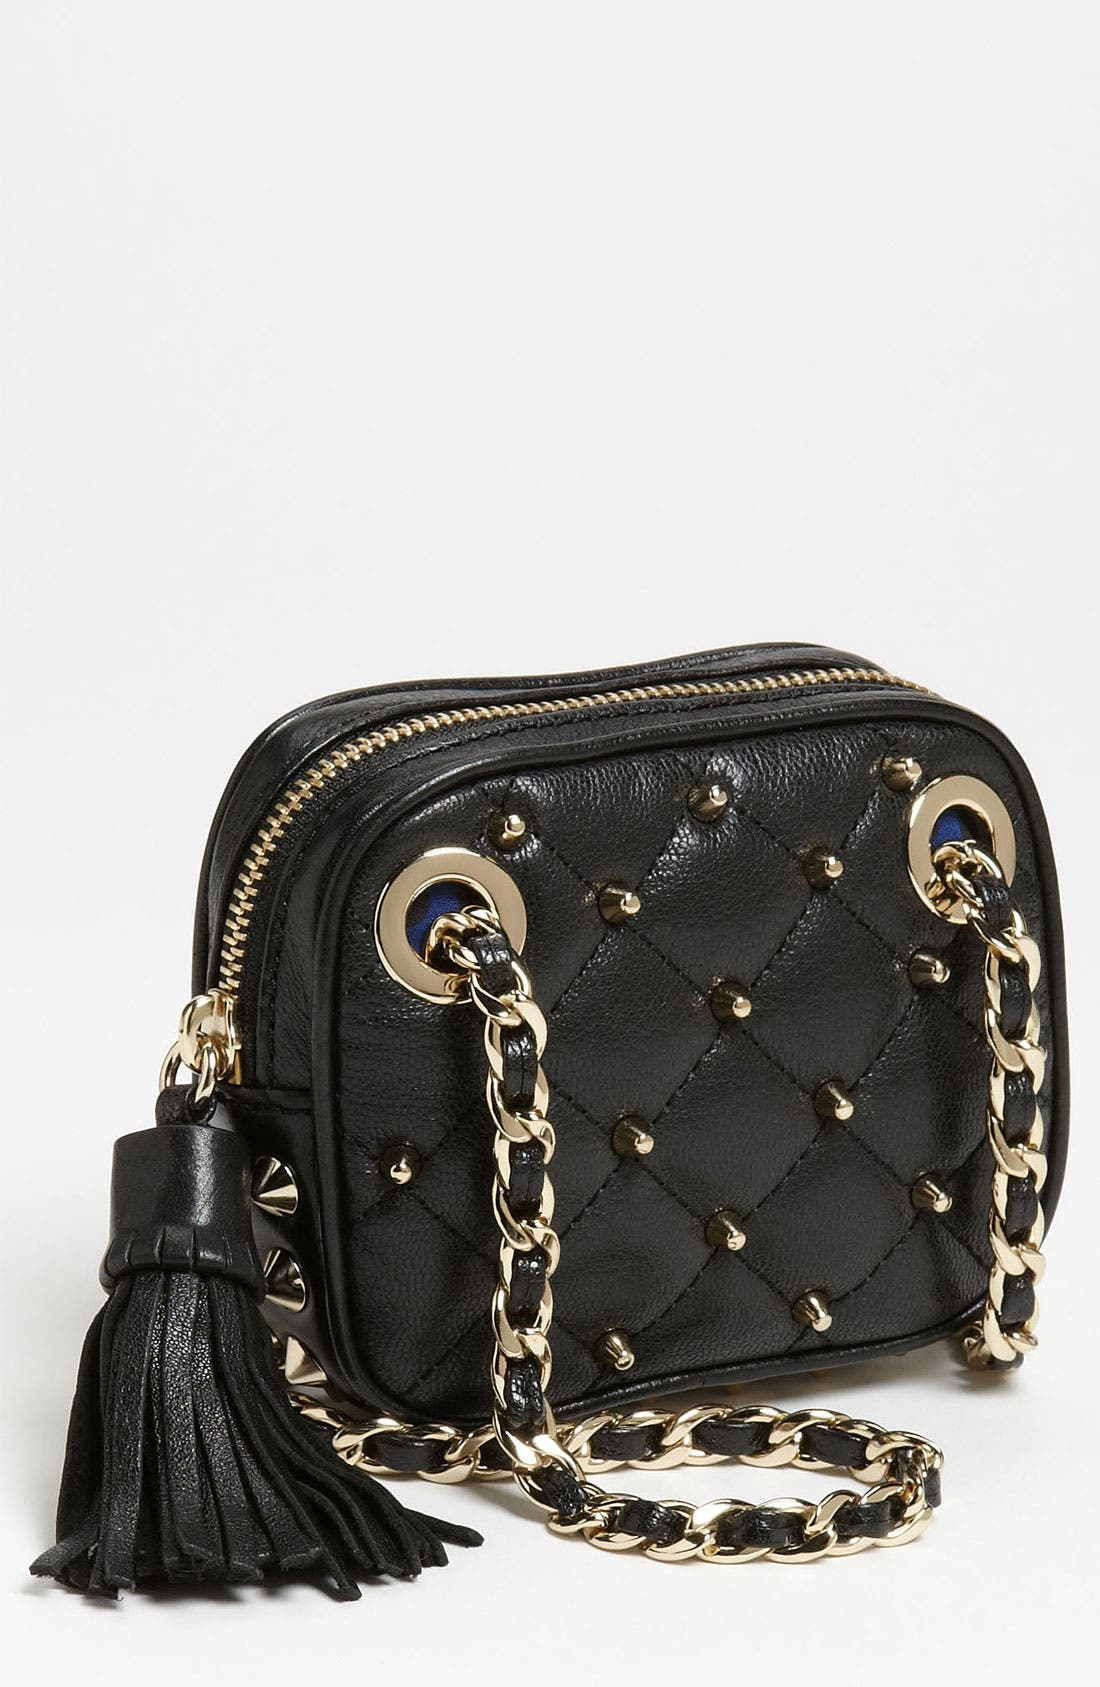 Main Image - Rebecca Minkoff 'Mini Flirty' Crossbody Bag